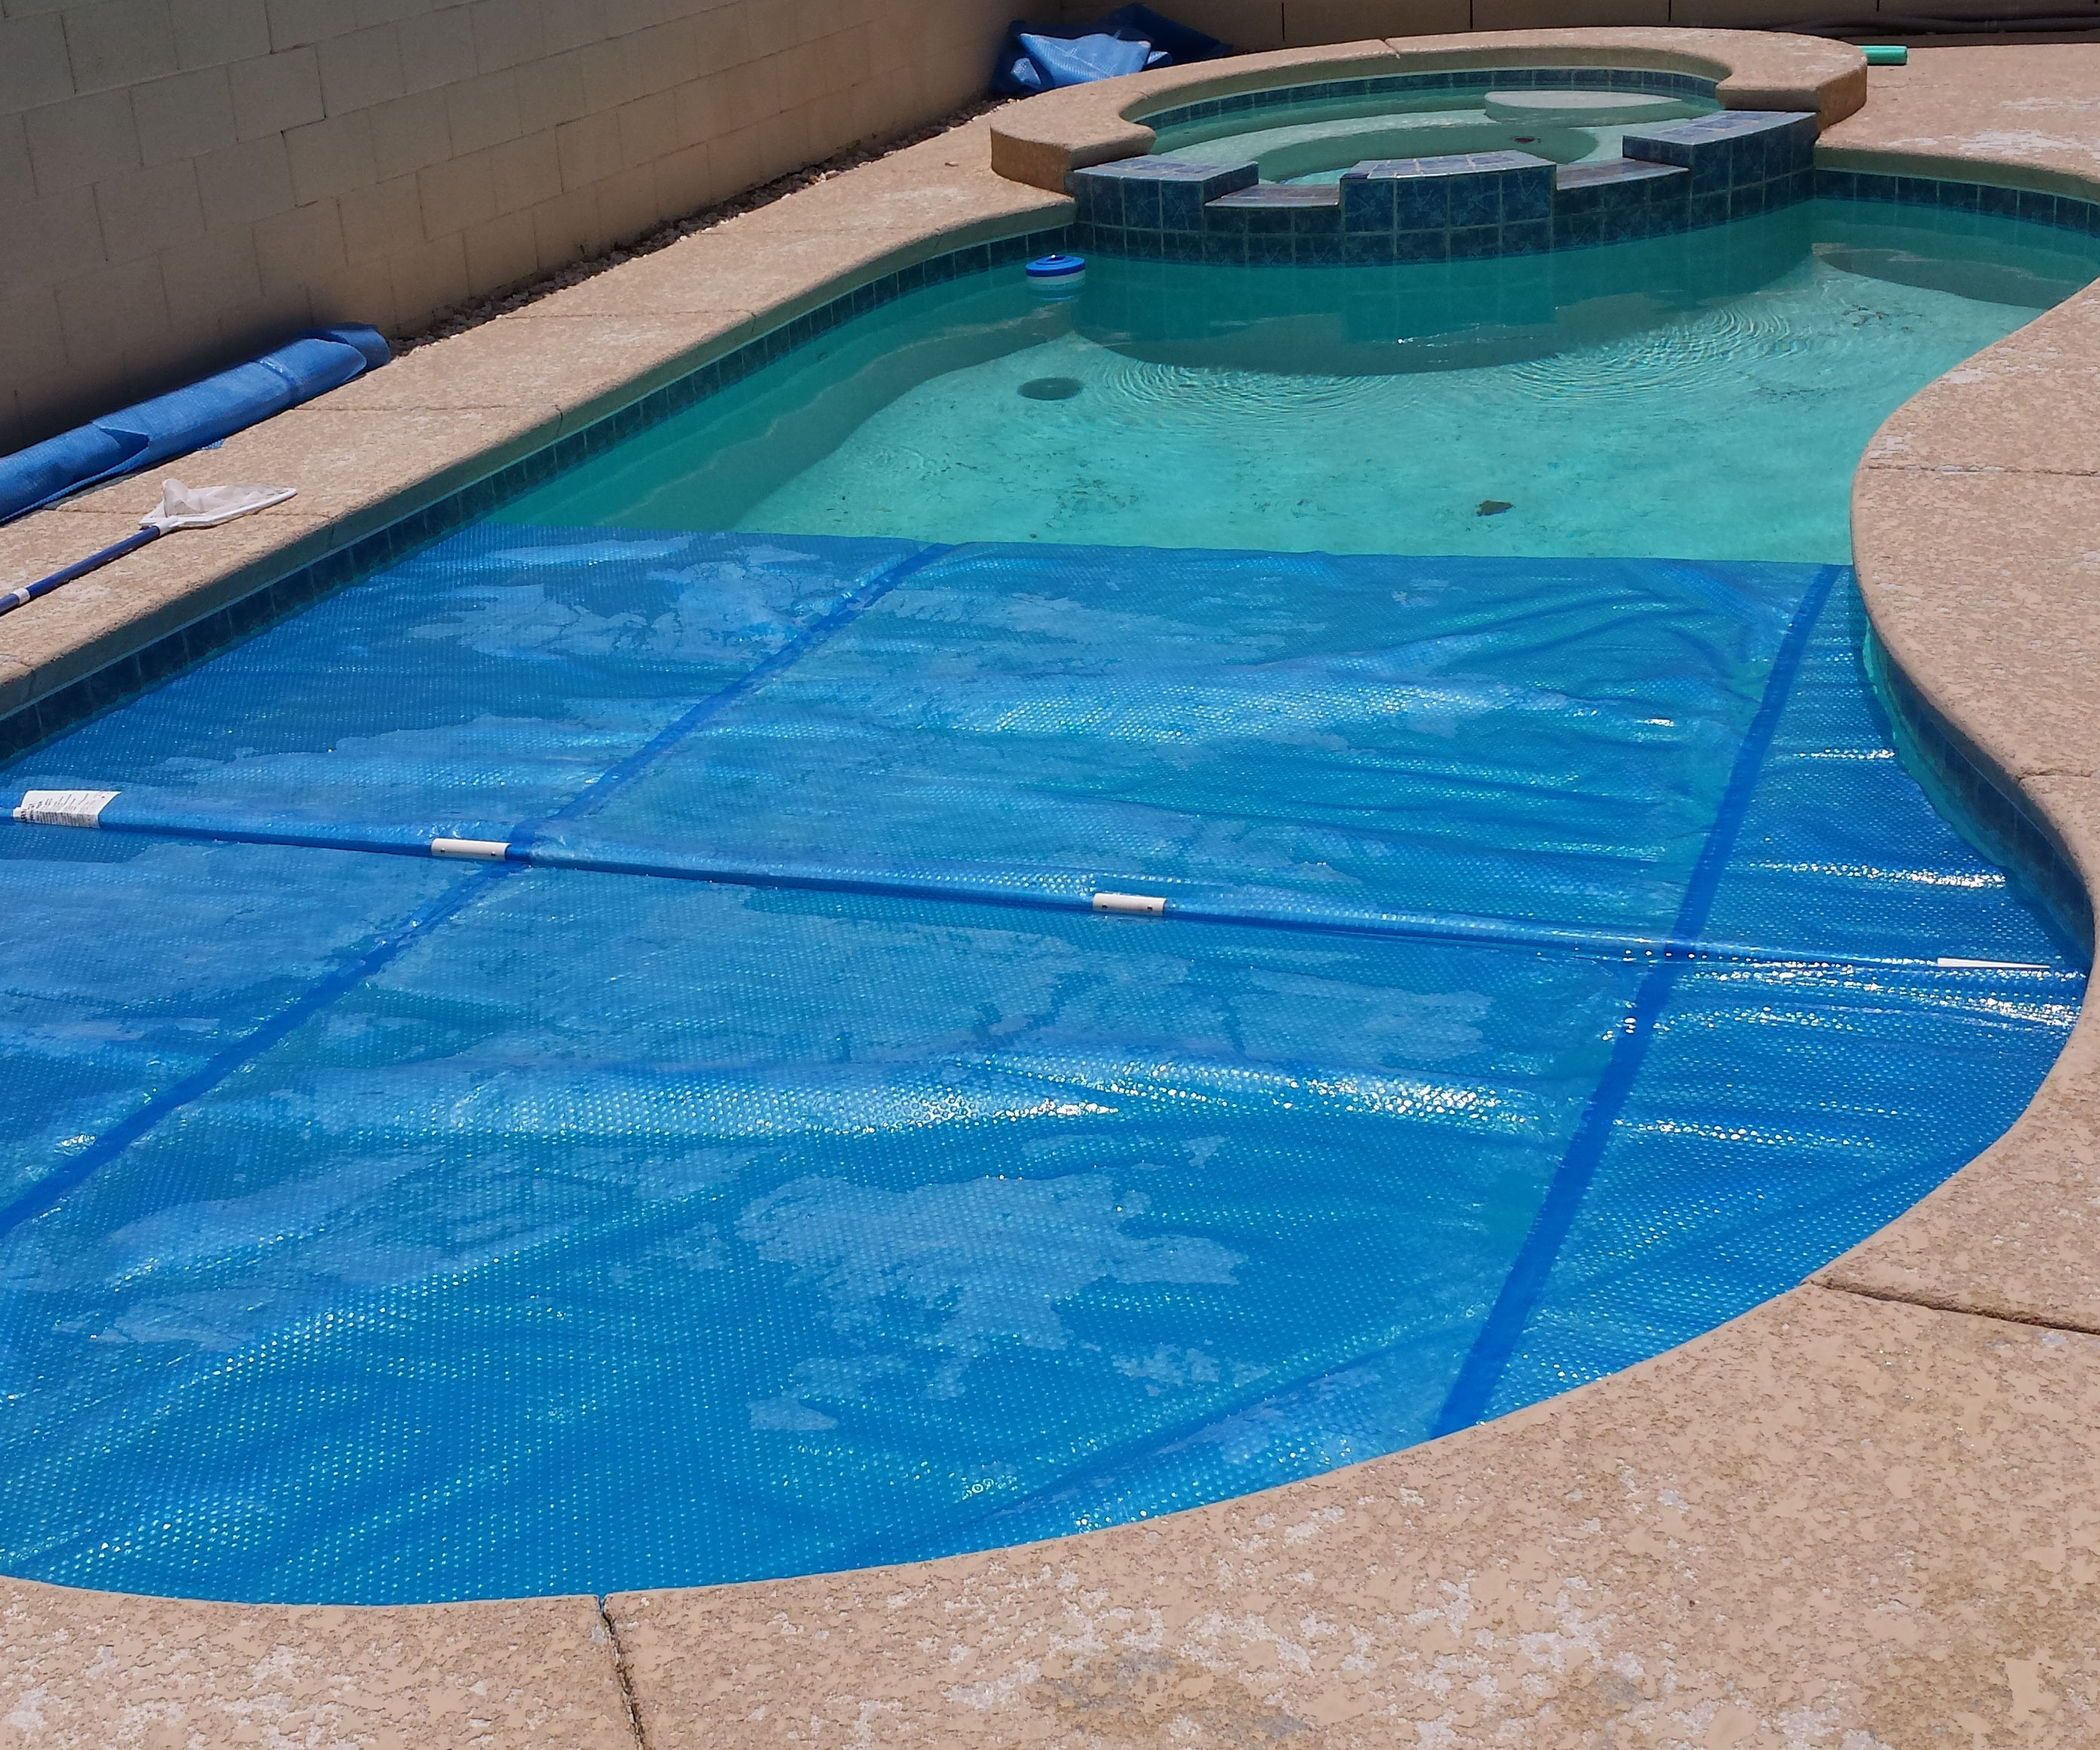 Pool Covers - Which Type of Cover Will Suit For Your Swimming Pool?